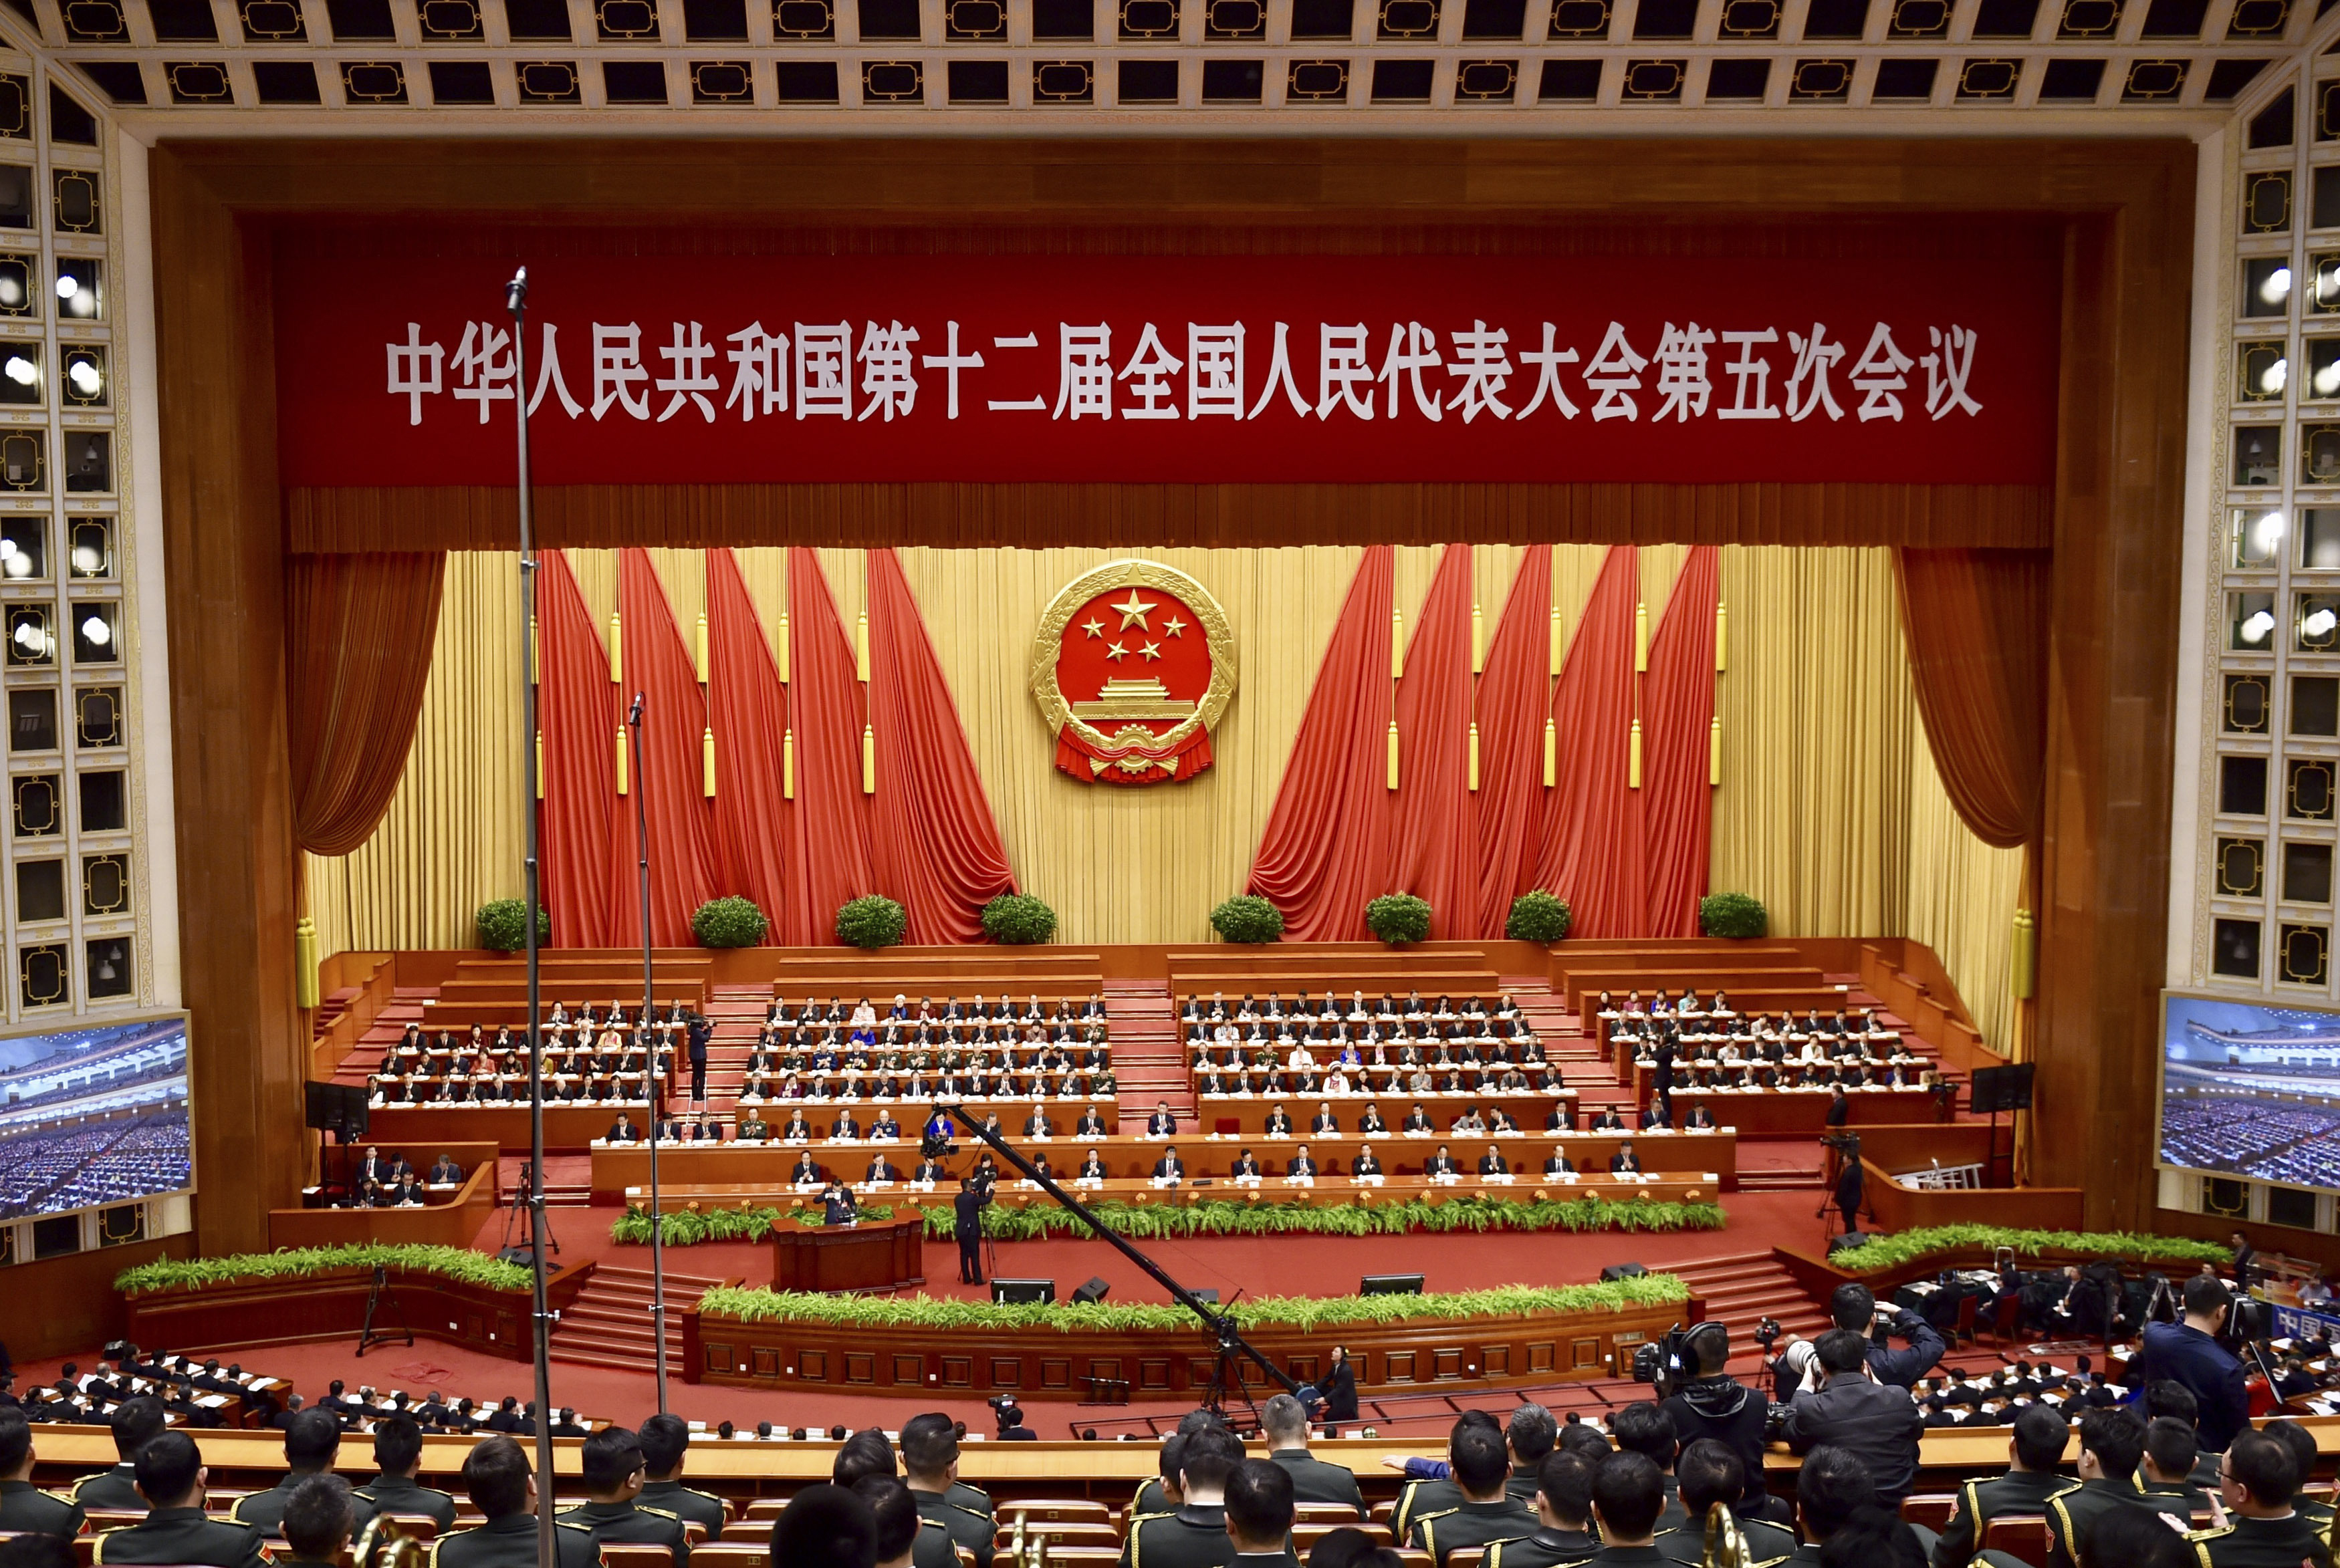 Delegates attend the Fifth Session of the 12th National People's Congress on March 5, 2017, in Beijing